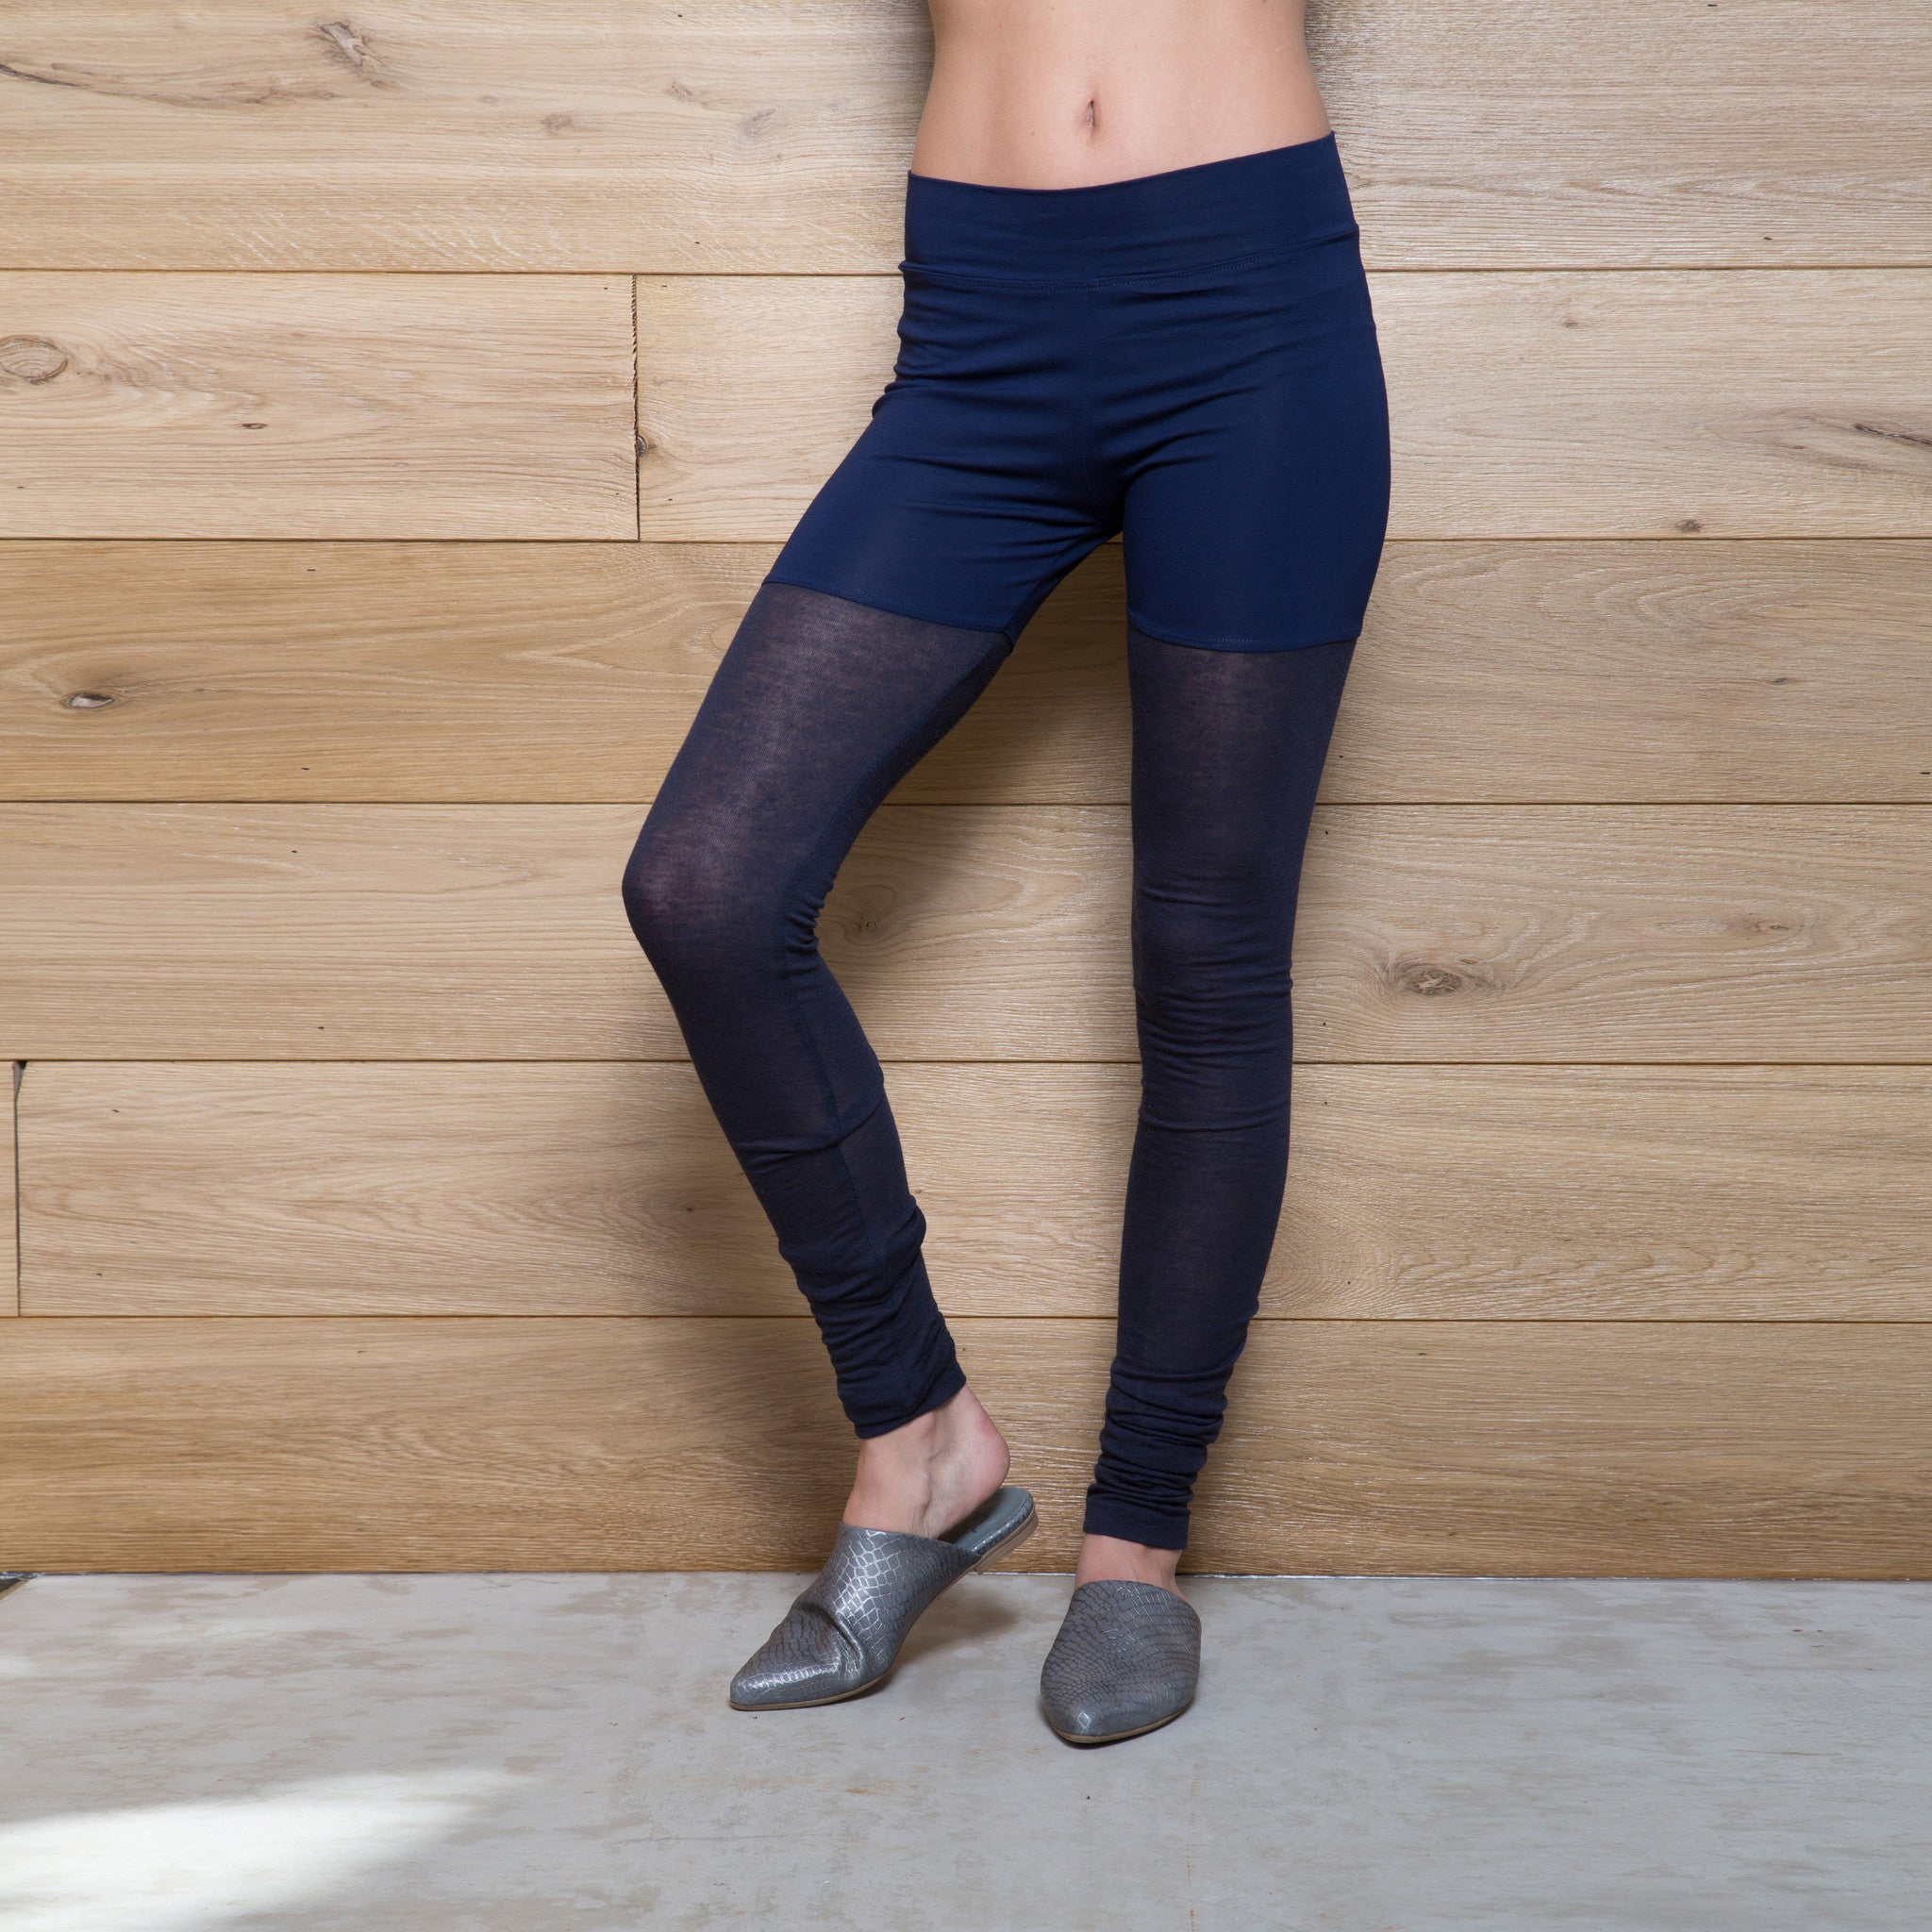 Half jersey half cashmere winter leggings - DuendeFashion  - 2